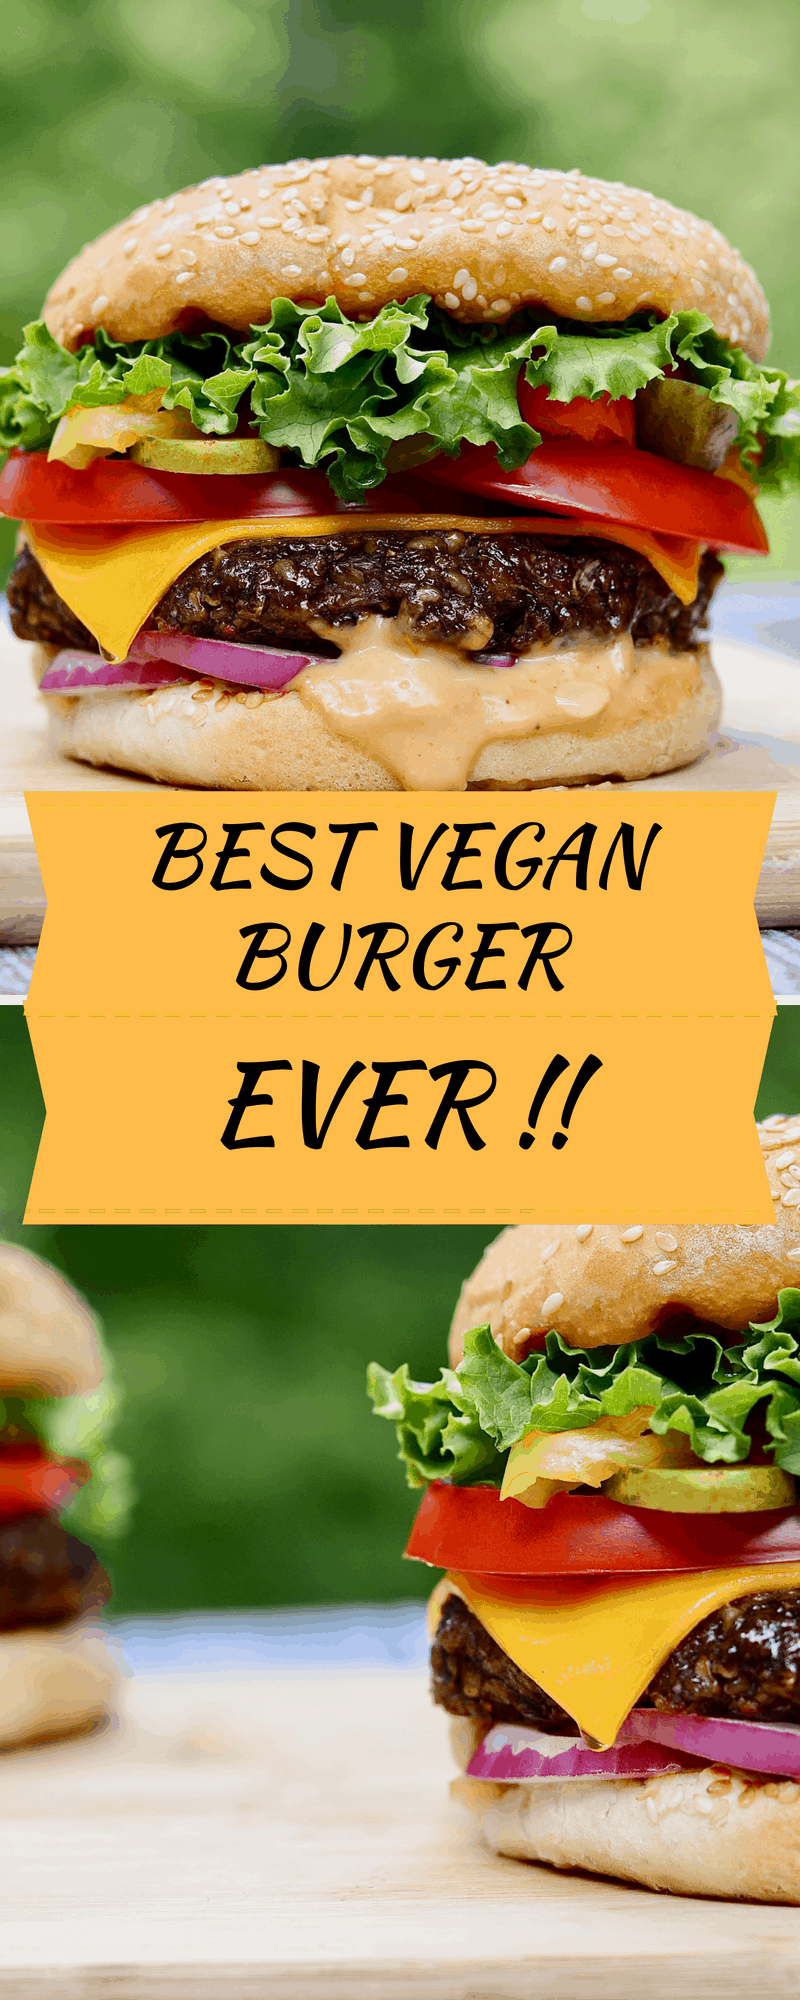 best vegan burger on a wooden cutting board